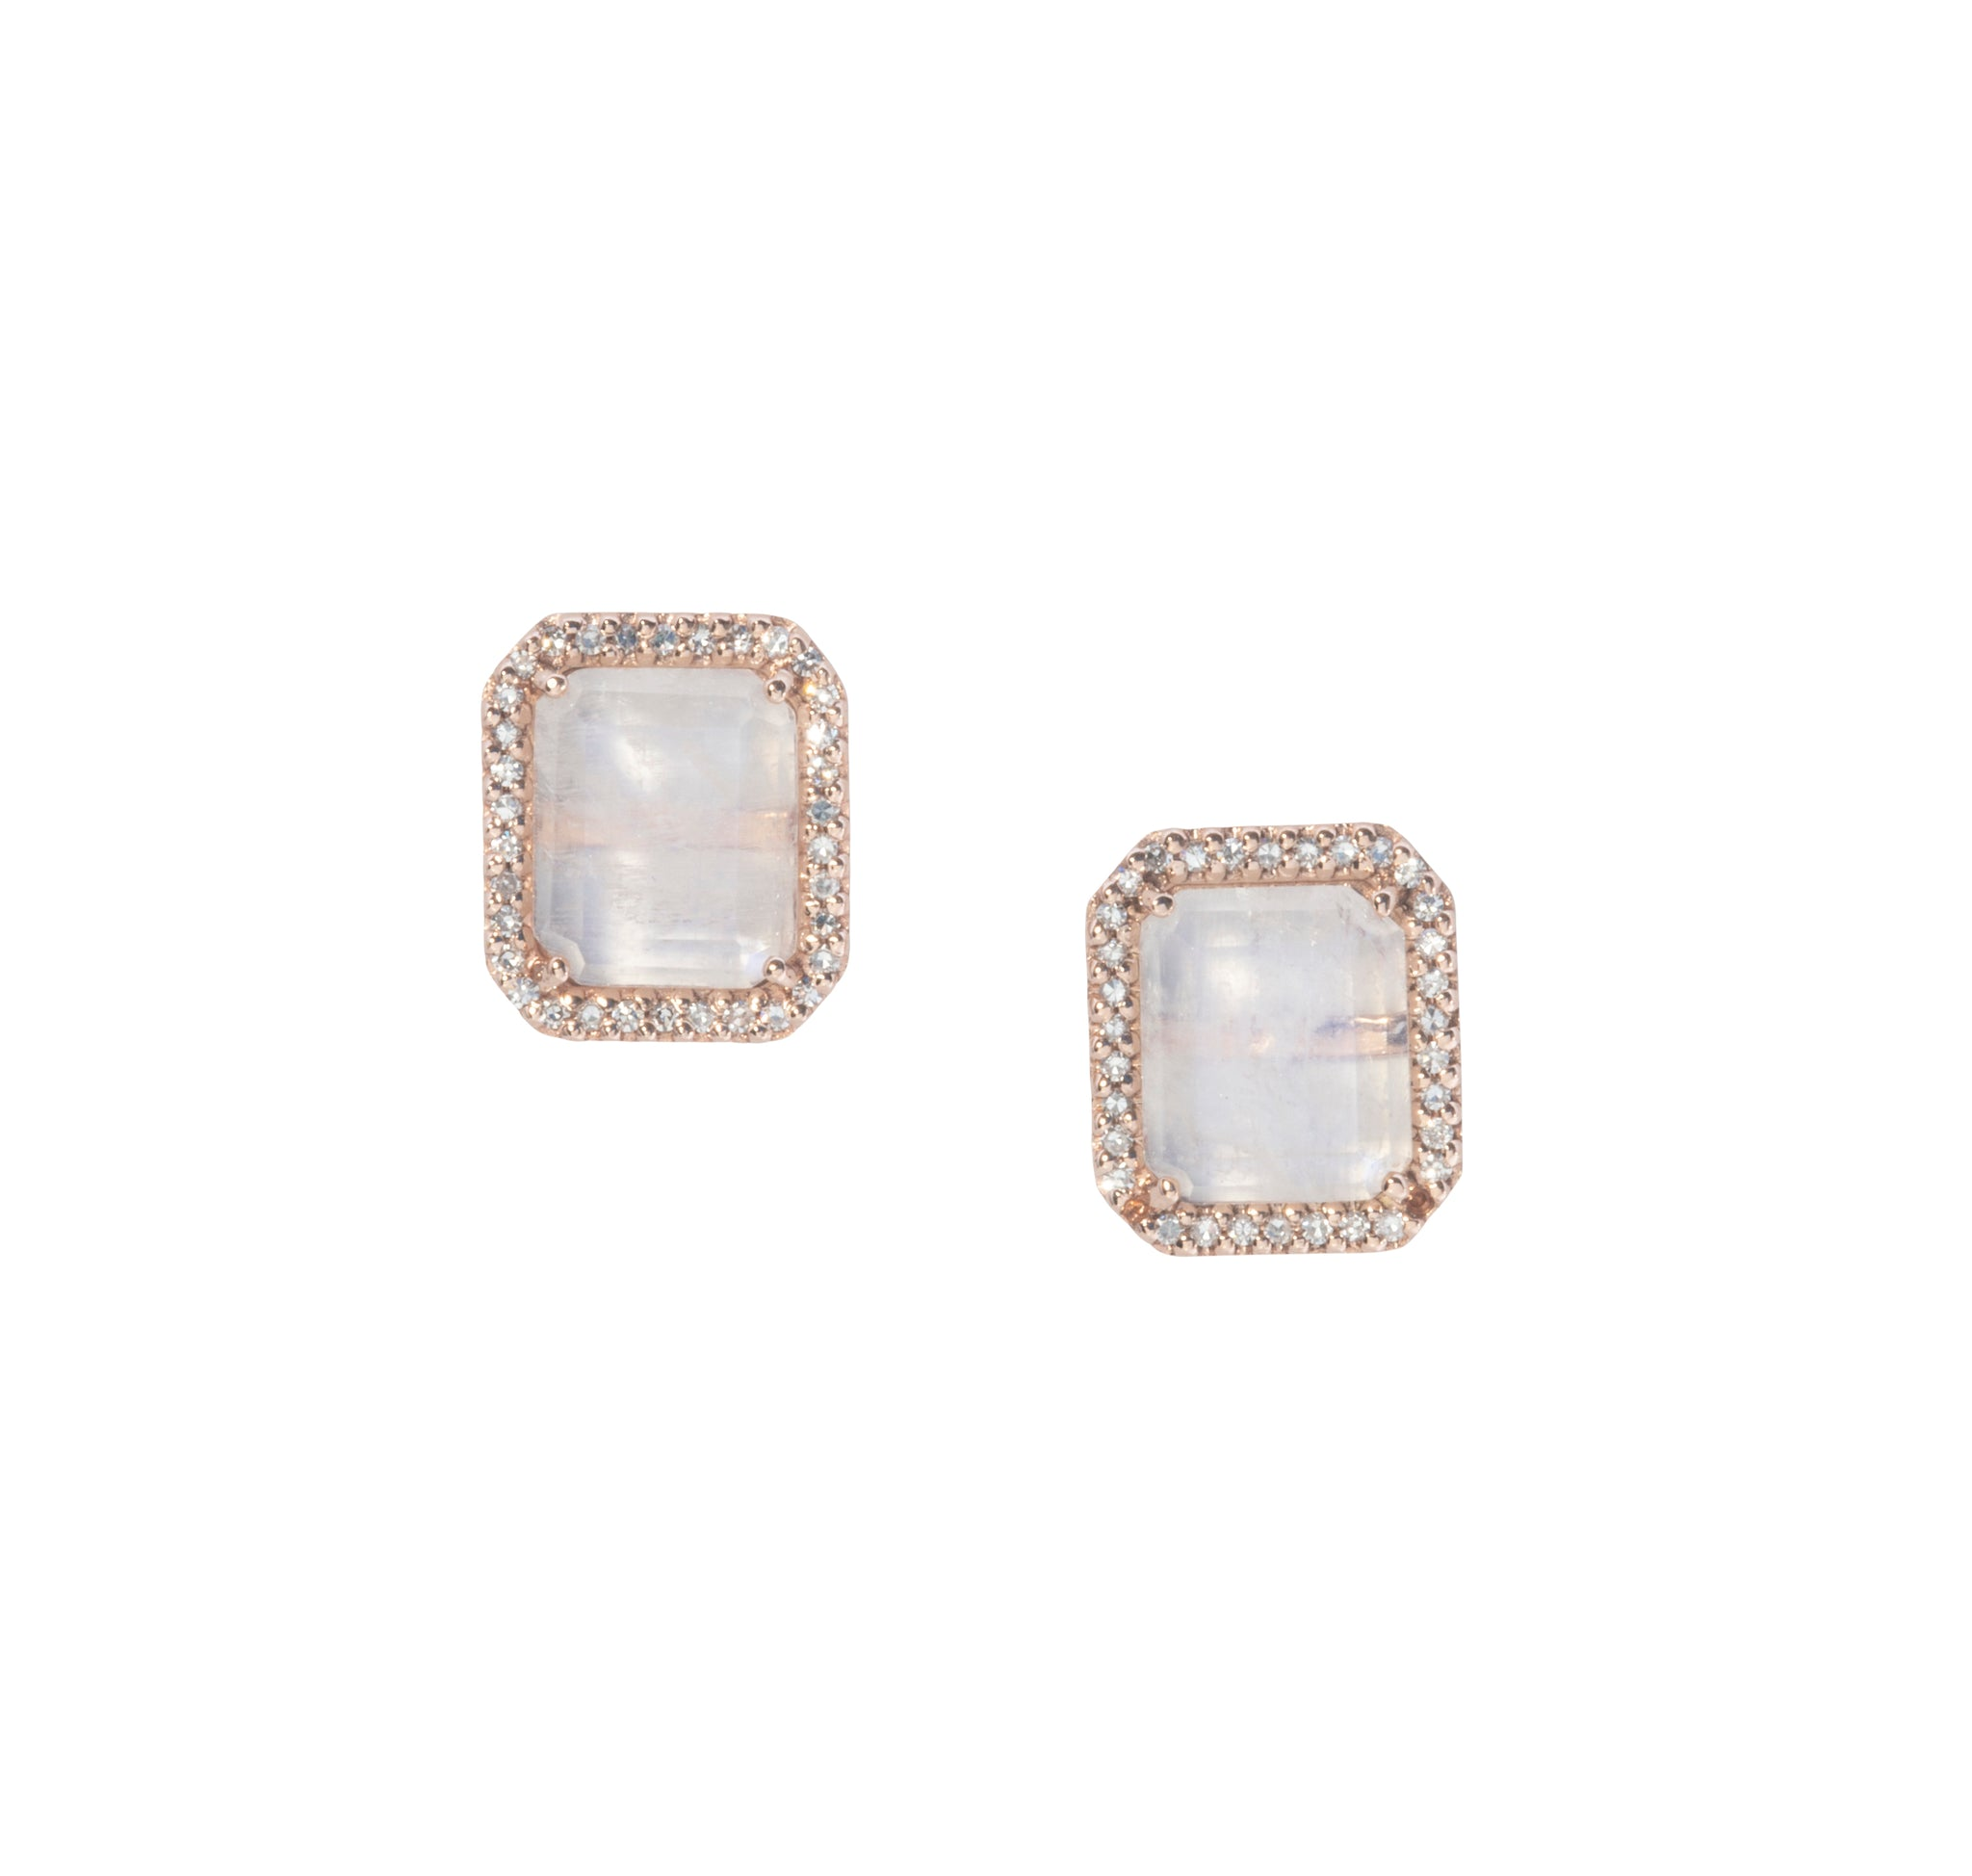 Rainbow Moonstone & Diamond Stud Earrings